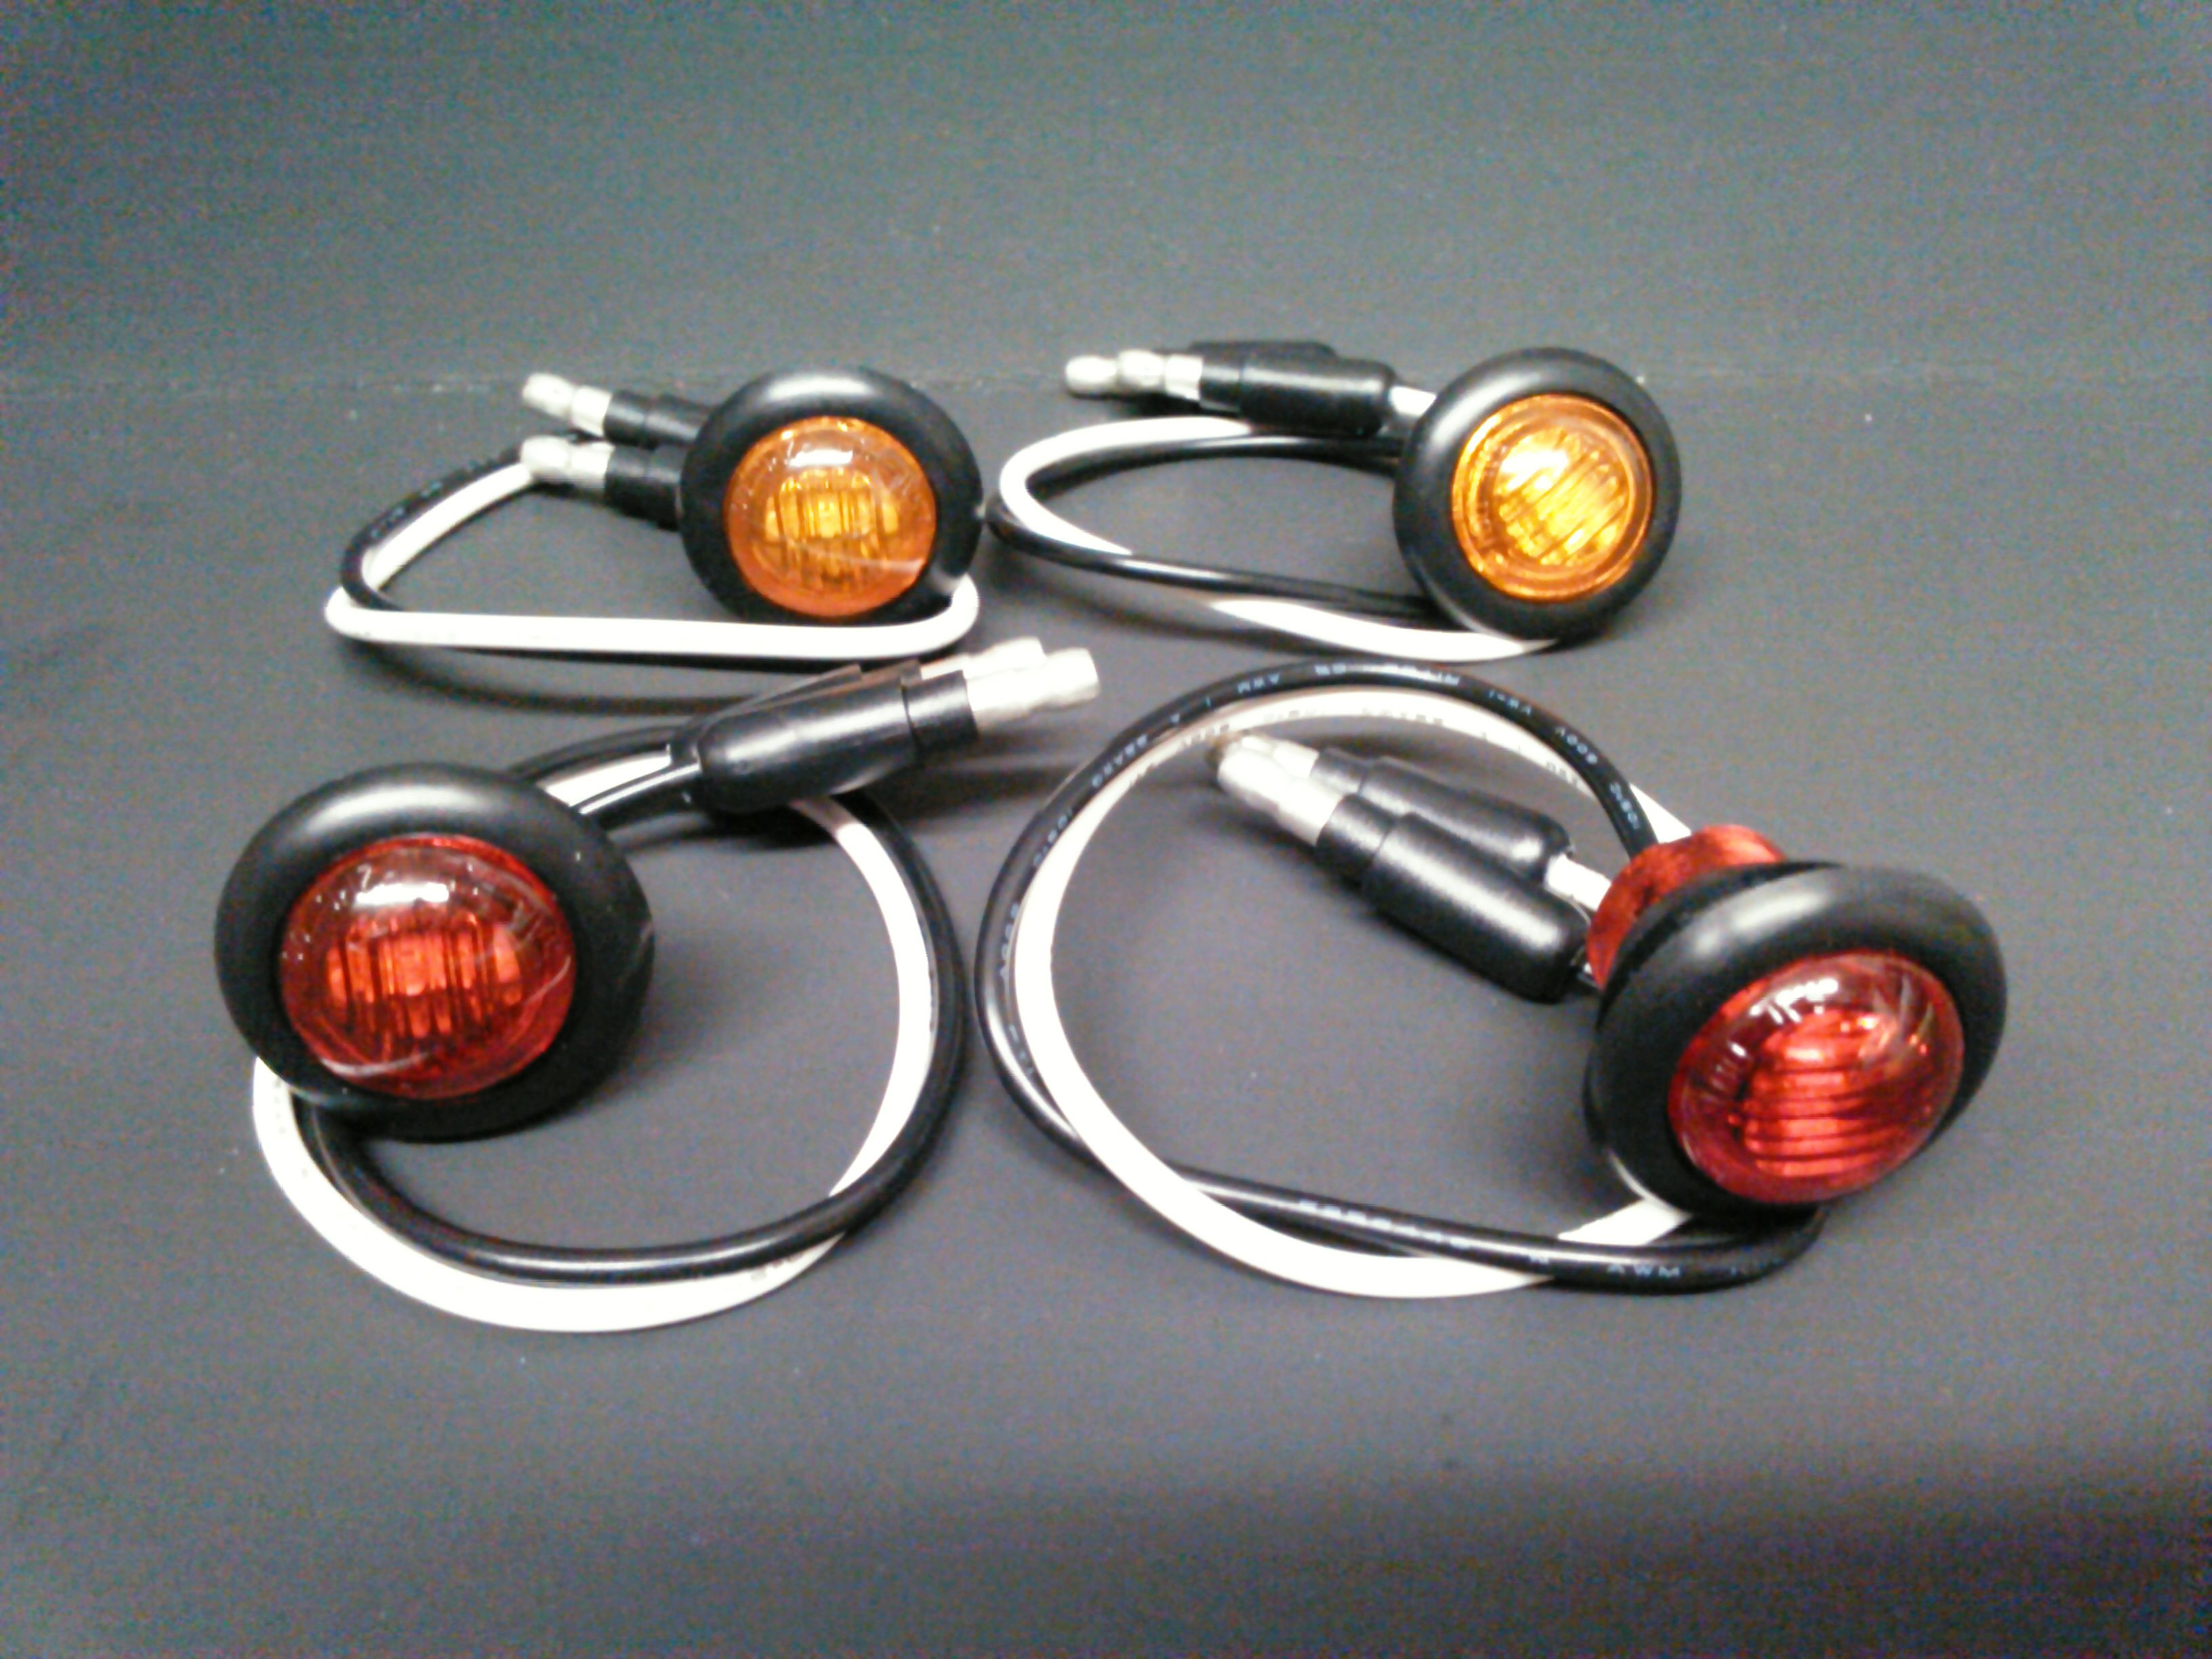 8bd90fc1c0fd72c38f21ab732ae6fe9f led turn signal lights for your sxs, utv, atv wiring diagrams for utv turn signal wiring diagram at gsmx.co